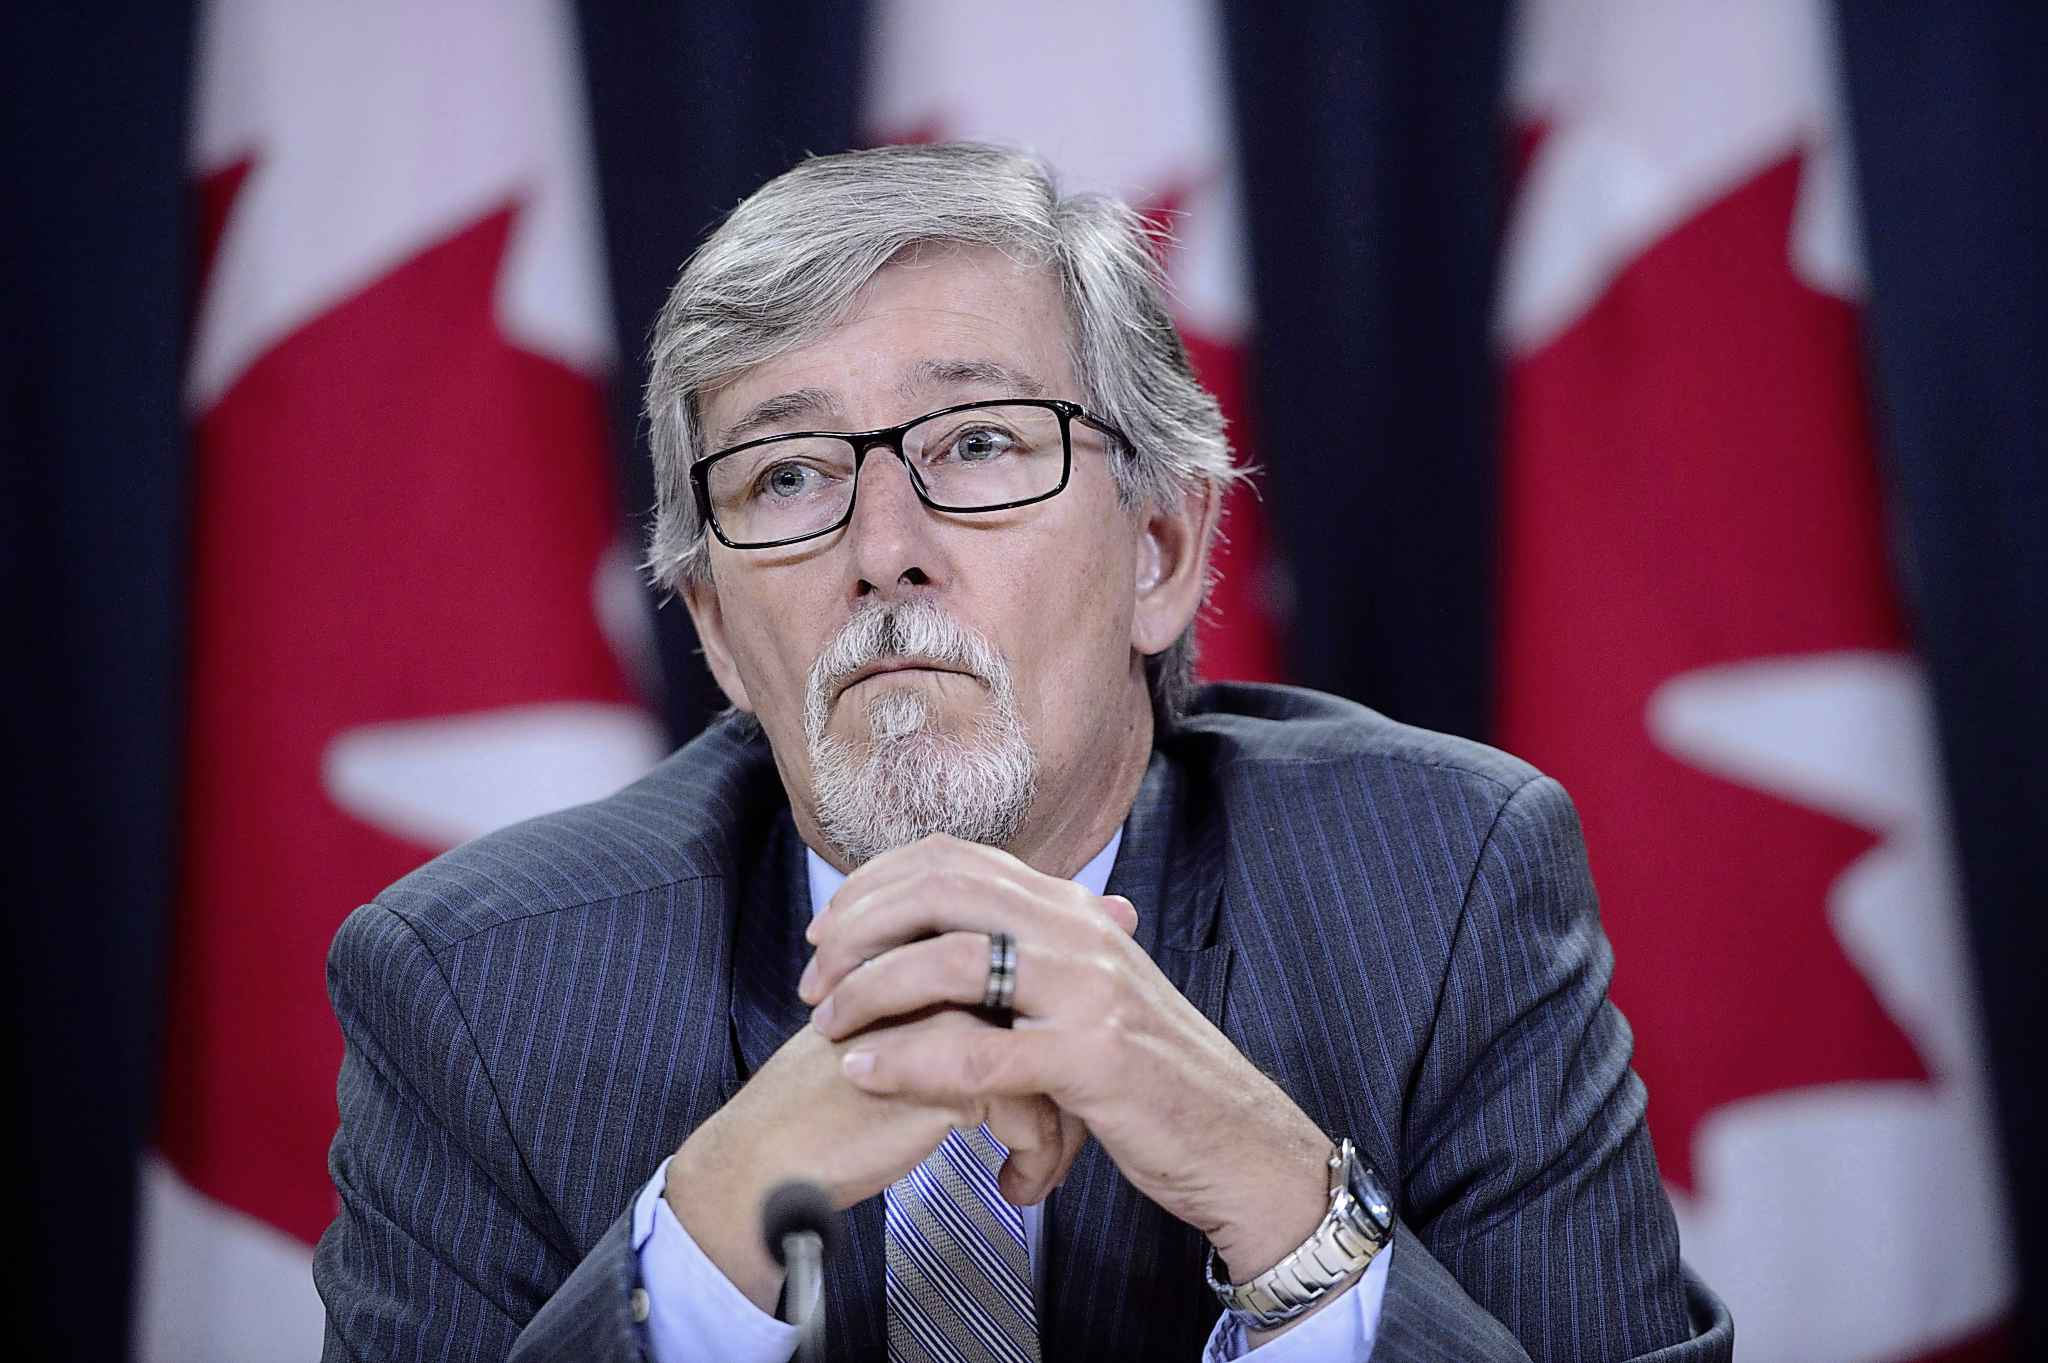 Privacy Commissioner Daniel Therrien was called upon to look into whether Ottawa breached its own laws regarding Glenn Joyal's rights to confidentiality.